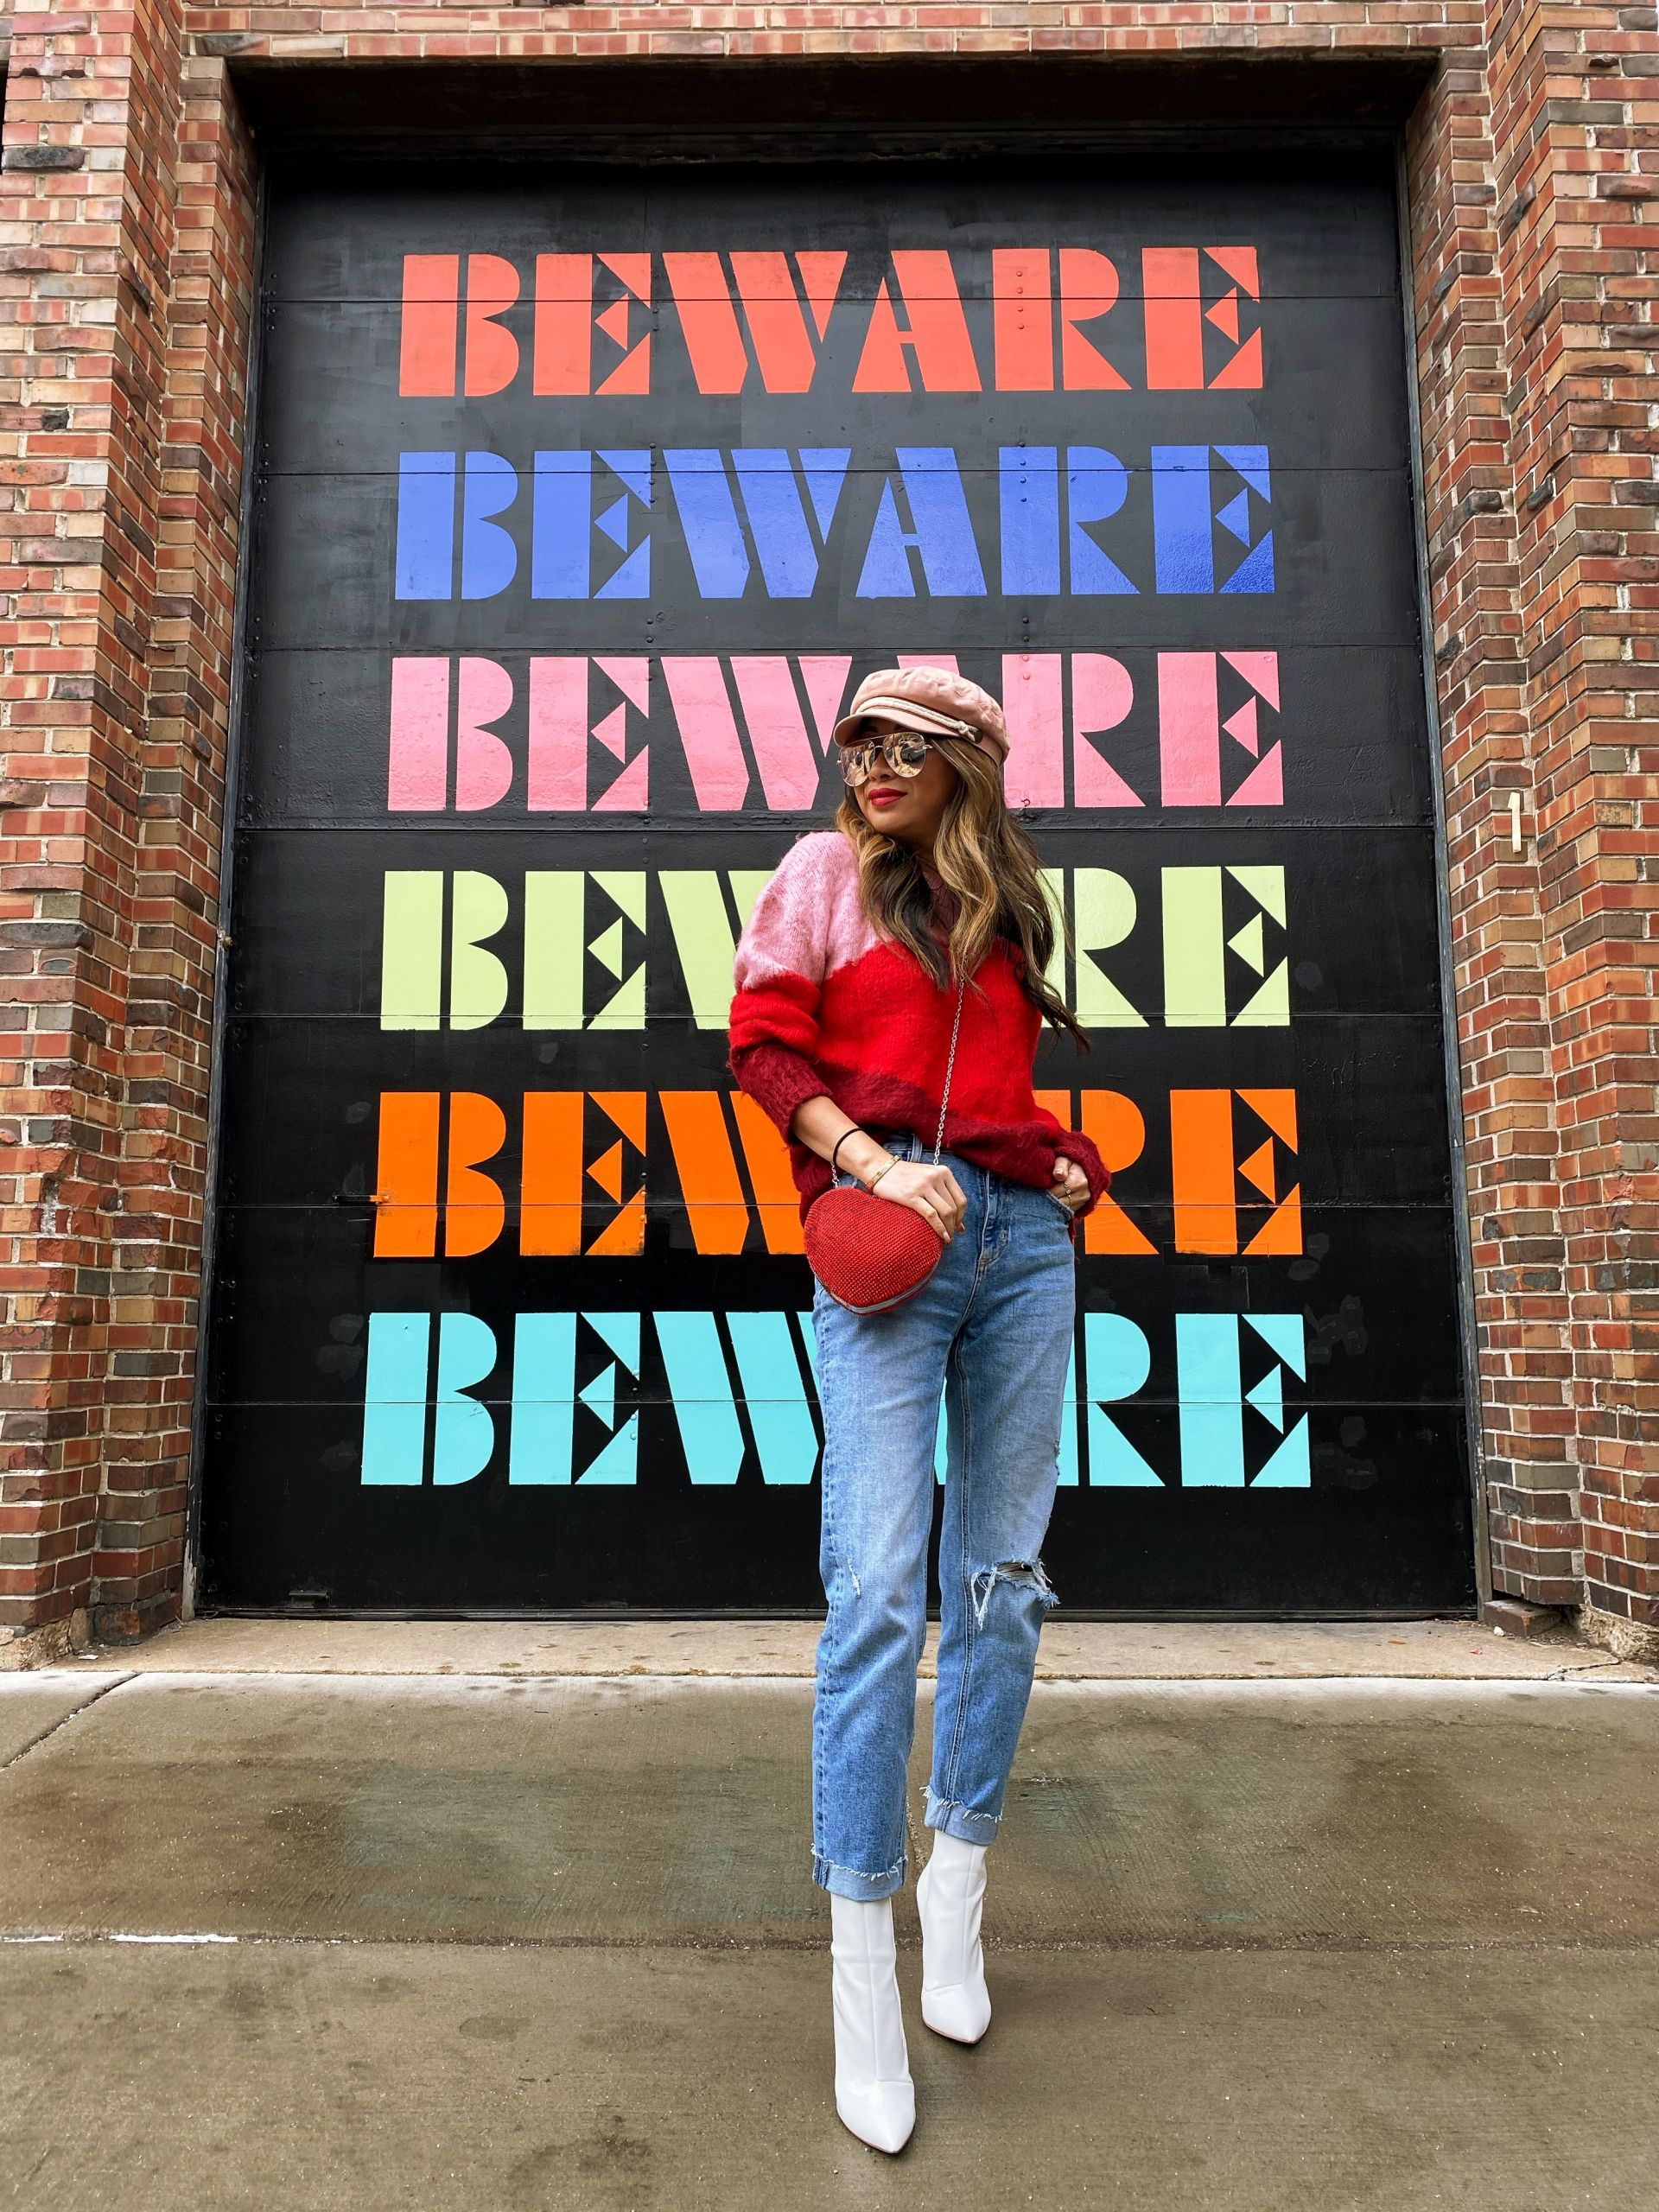 Top 10 Best Instagrammable Walls in Chicago, wall art in chicago, street art in chicago, best wall murals in chicago, photography in chicago, instagram chicago, best places to take photos in chicago, photoshoots in chicago, wall murals in chicago, wall guide, best wall art in chicago, 2020 murals in chicago, chicago guide, chicago blogger, chicago travel, chicago photography, chicago wall art, chicago murals, chicago art, beware mural, beware chicago mural